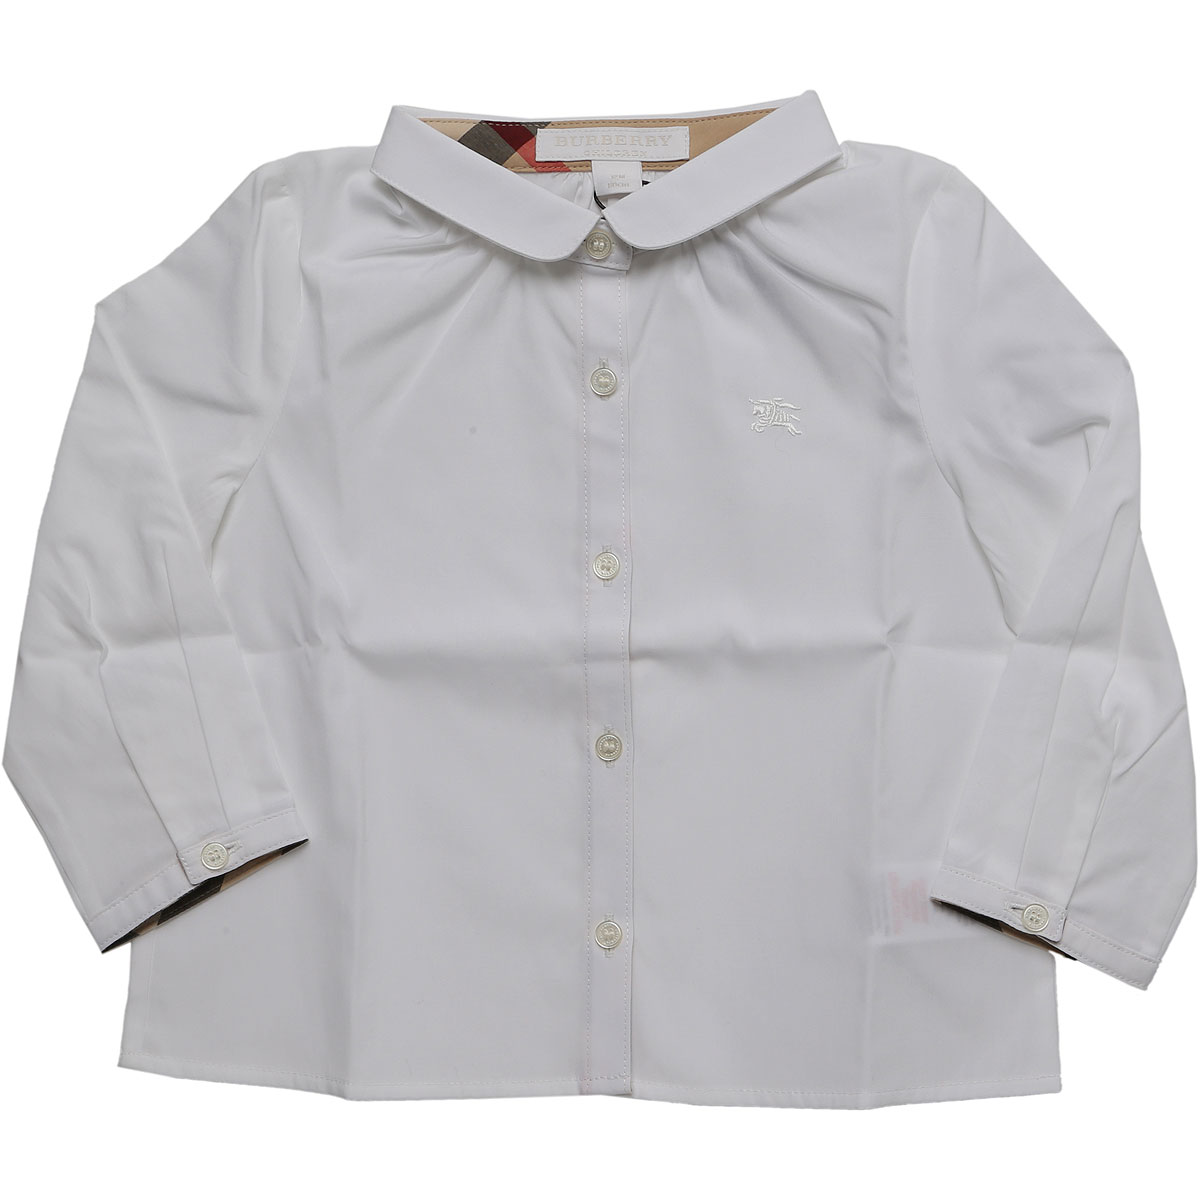 Image of Burberry Baby Shirts for Girls, White, Cotton, 2017, 12M 18M 2Y 3Y 6M 9M